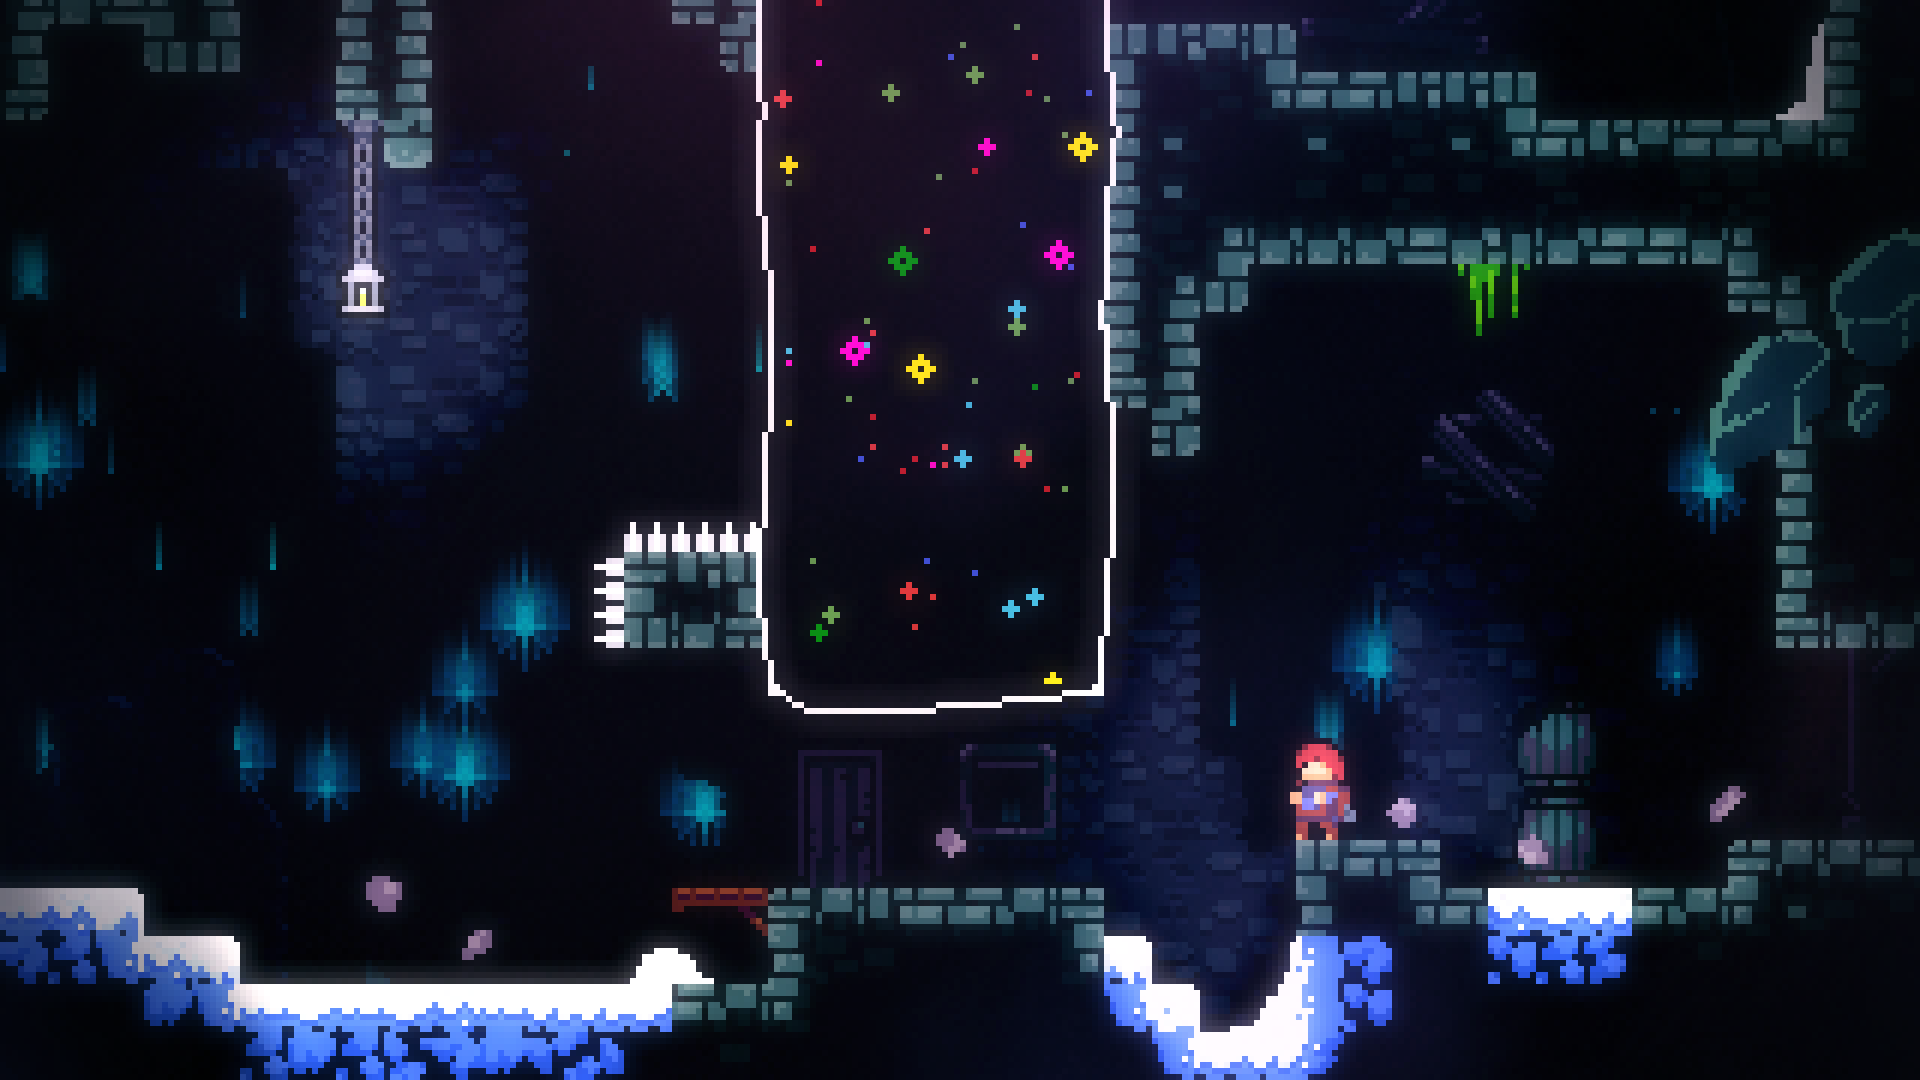 Celeste getting physical release on Switch